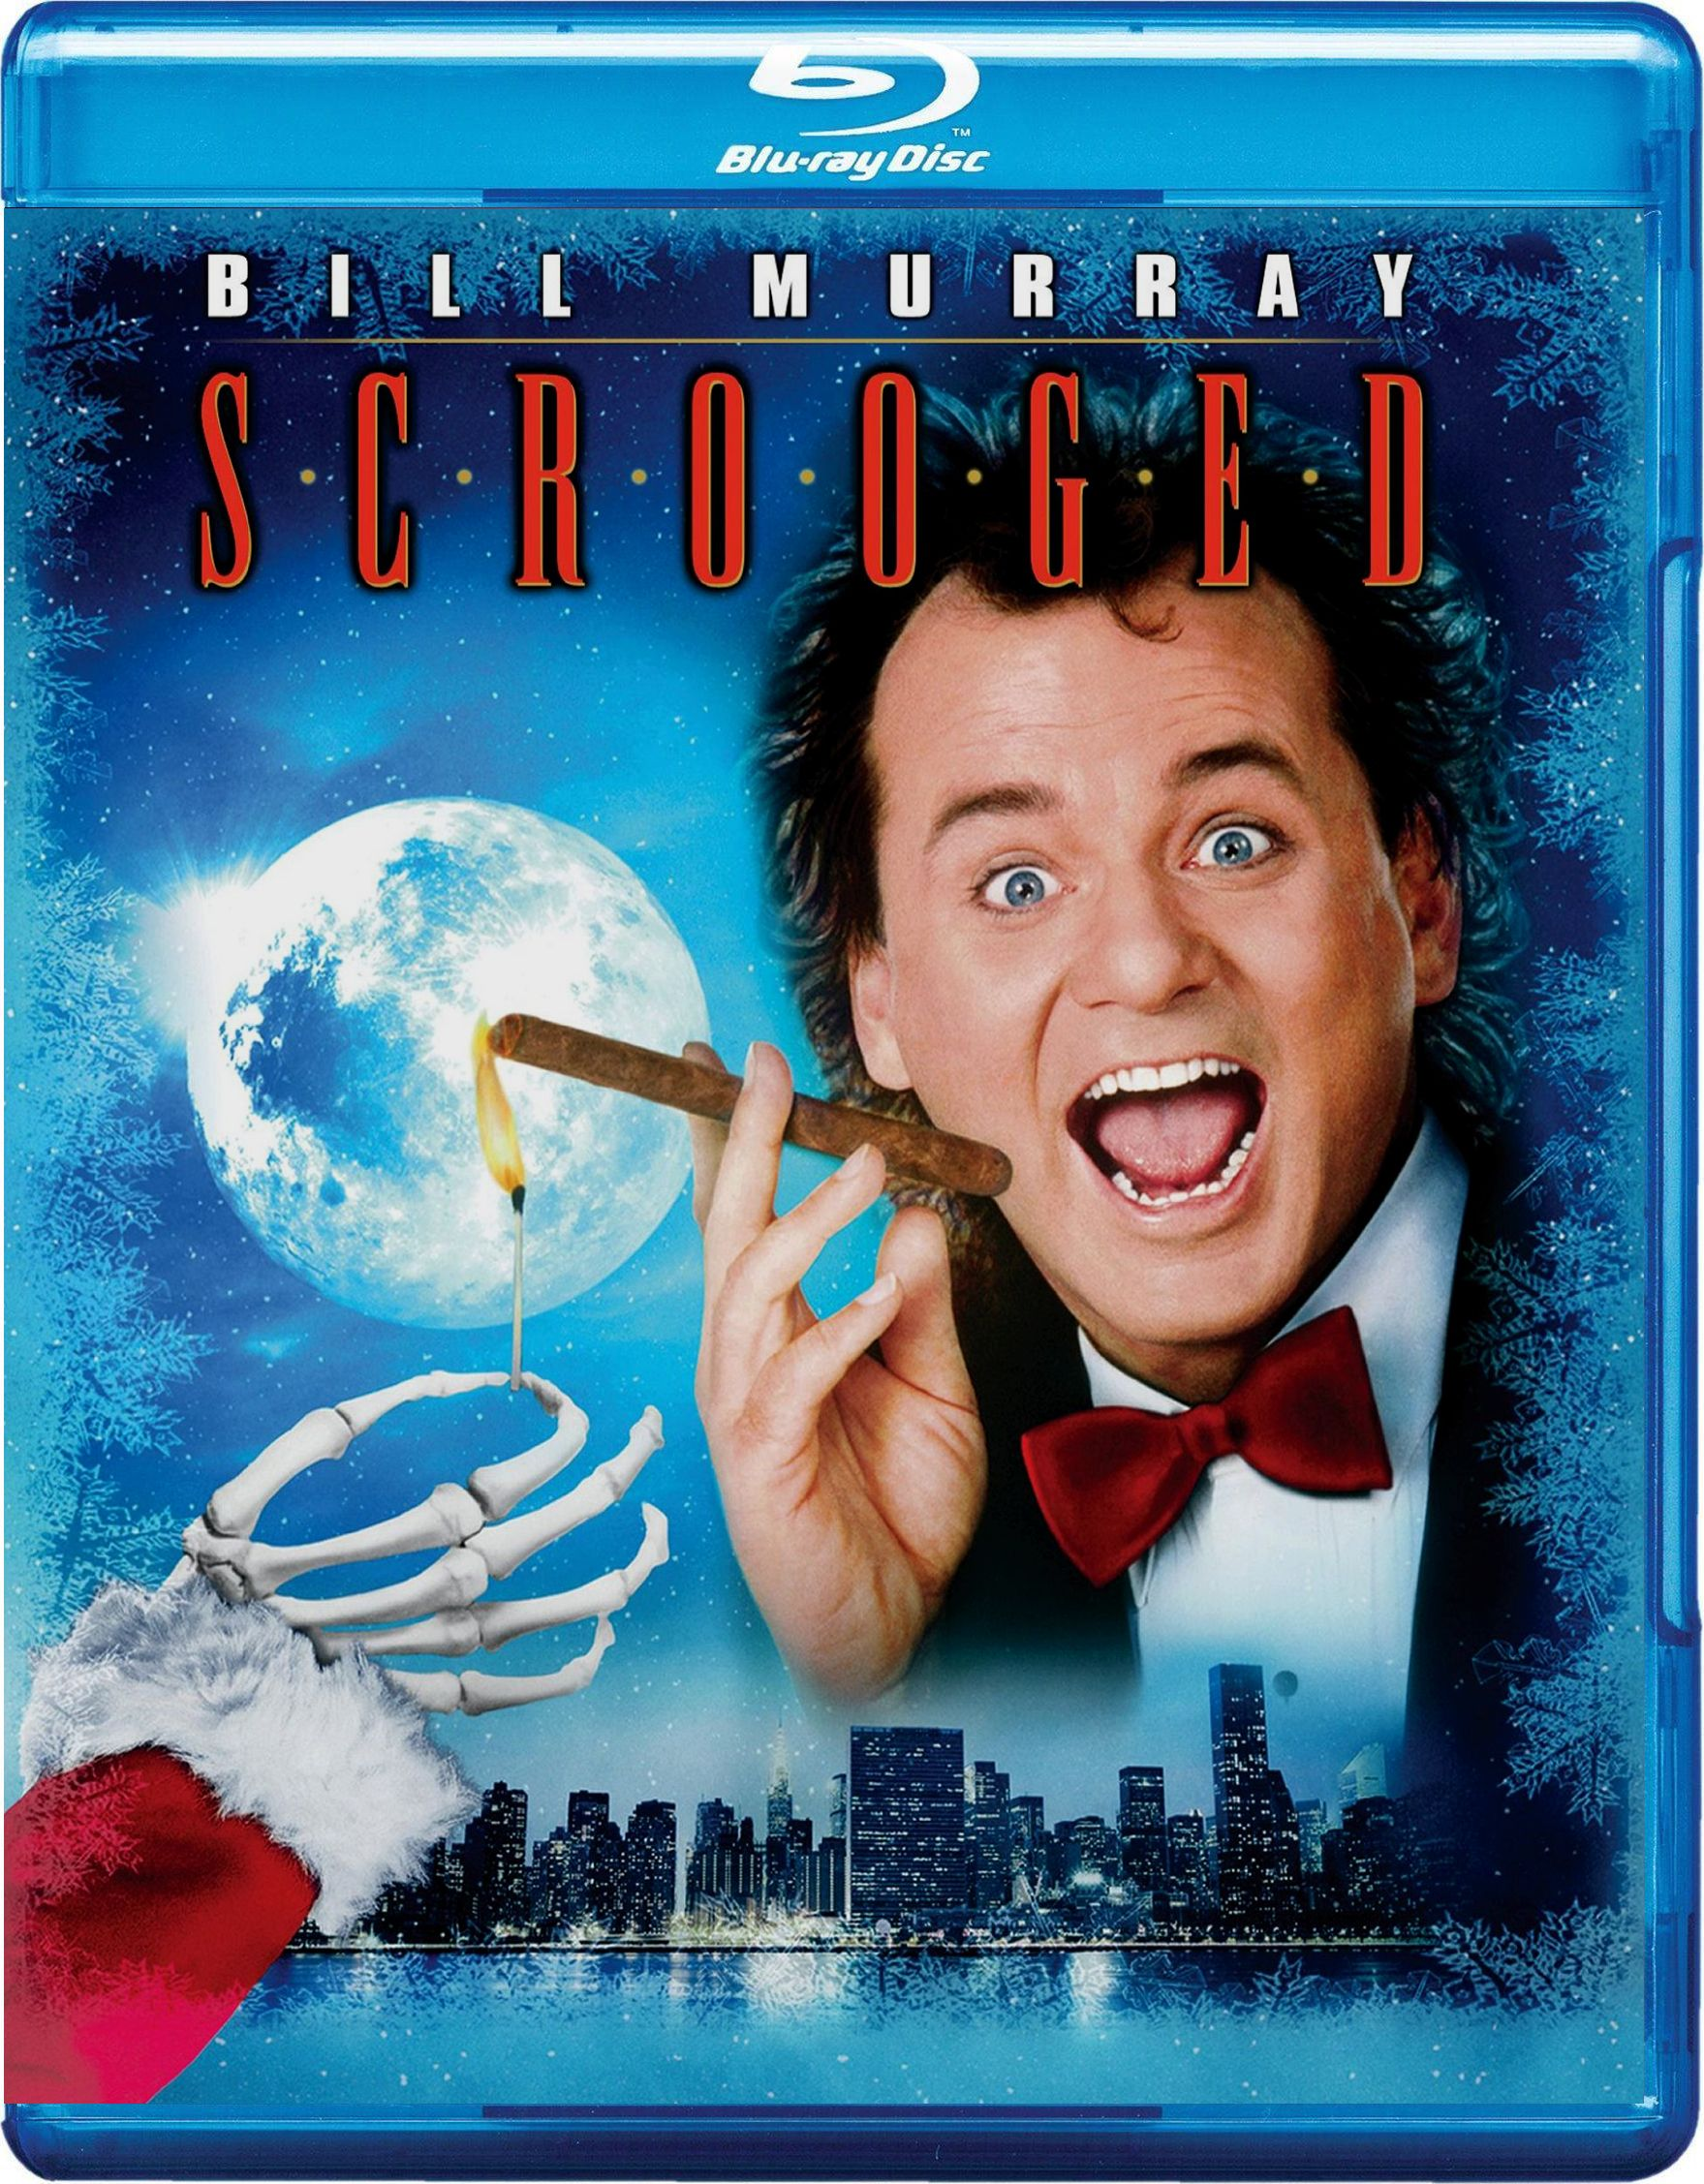 Scrooged Blu-ray | MOVIE COVERS | Pinterest | Christmas Movies ...